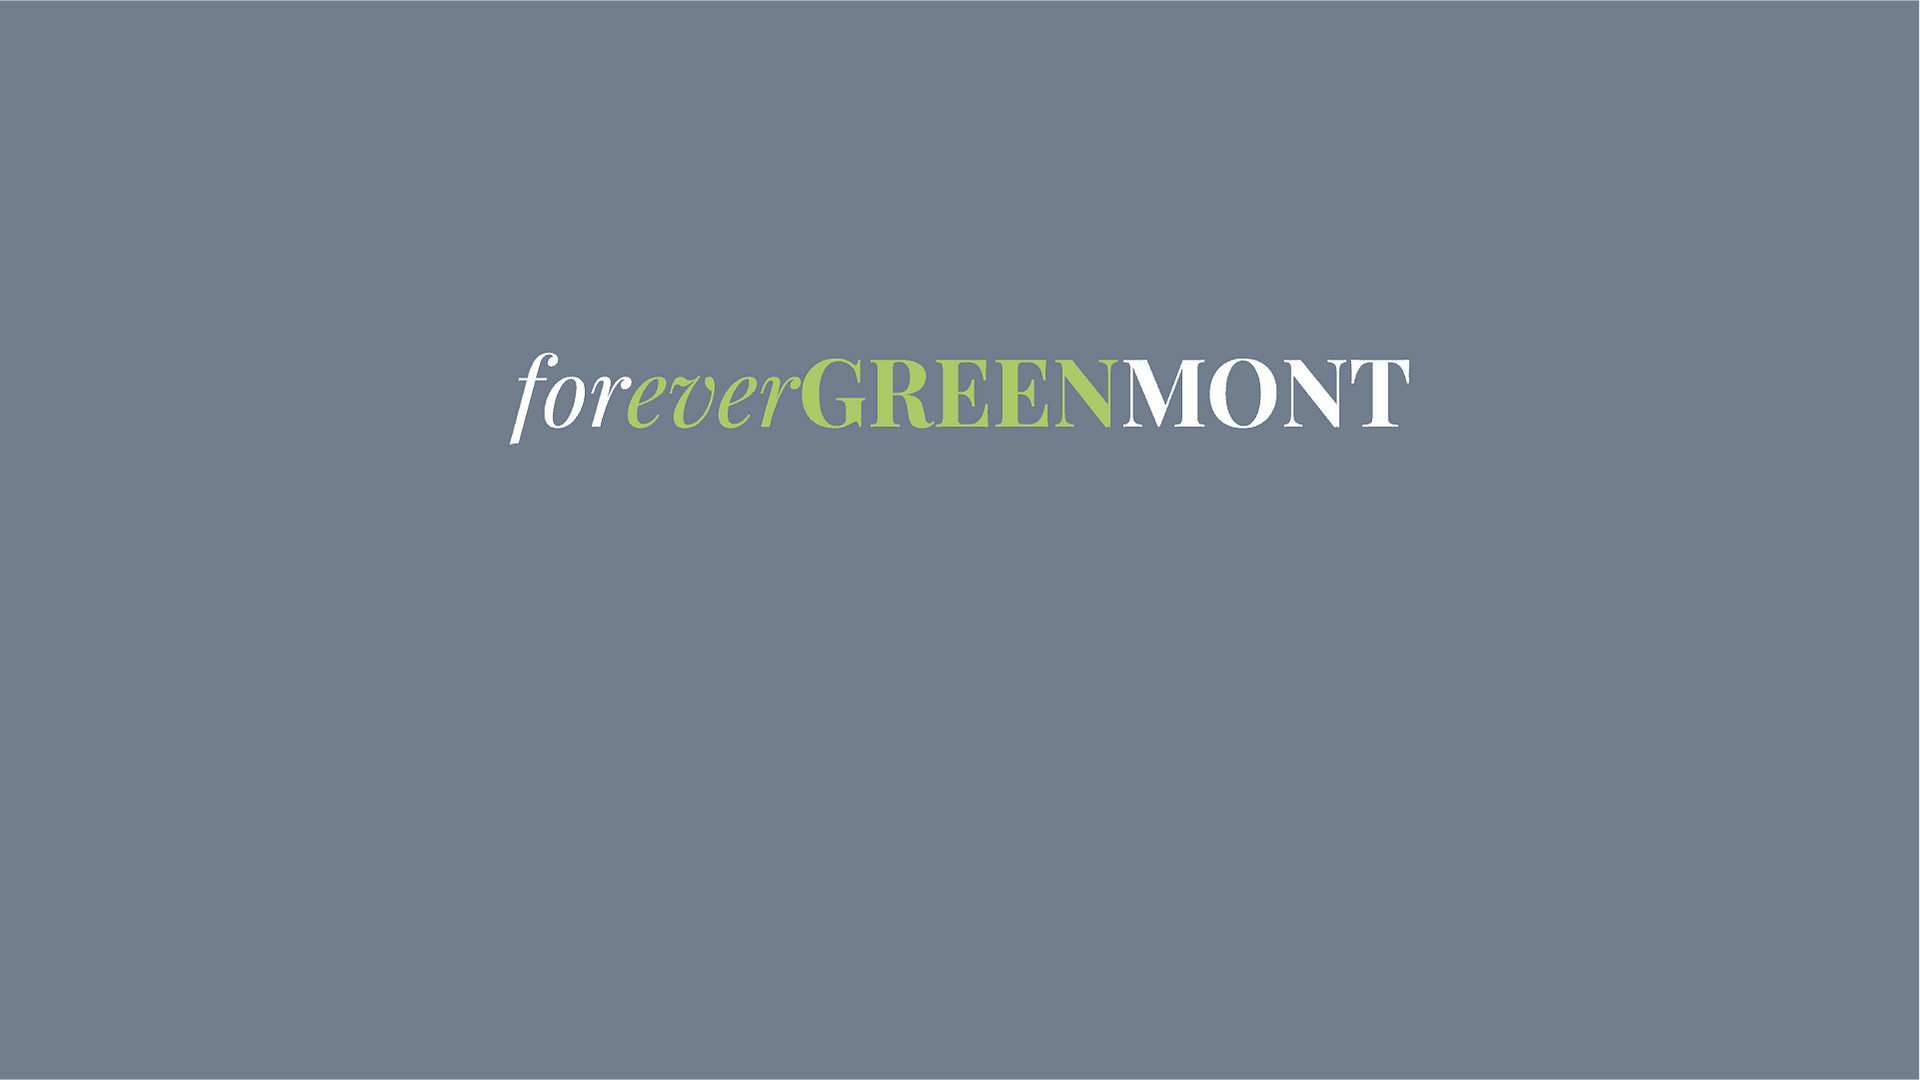 Forever Greenmont logotype on a blue background